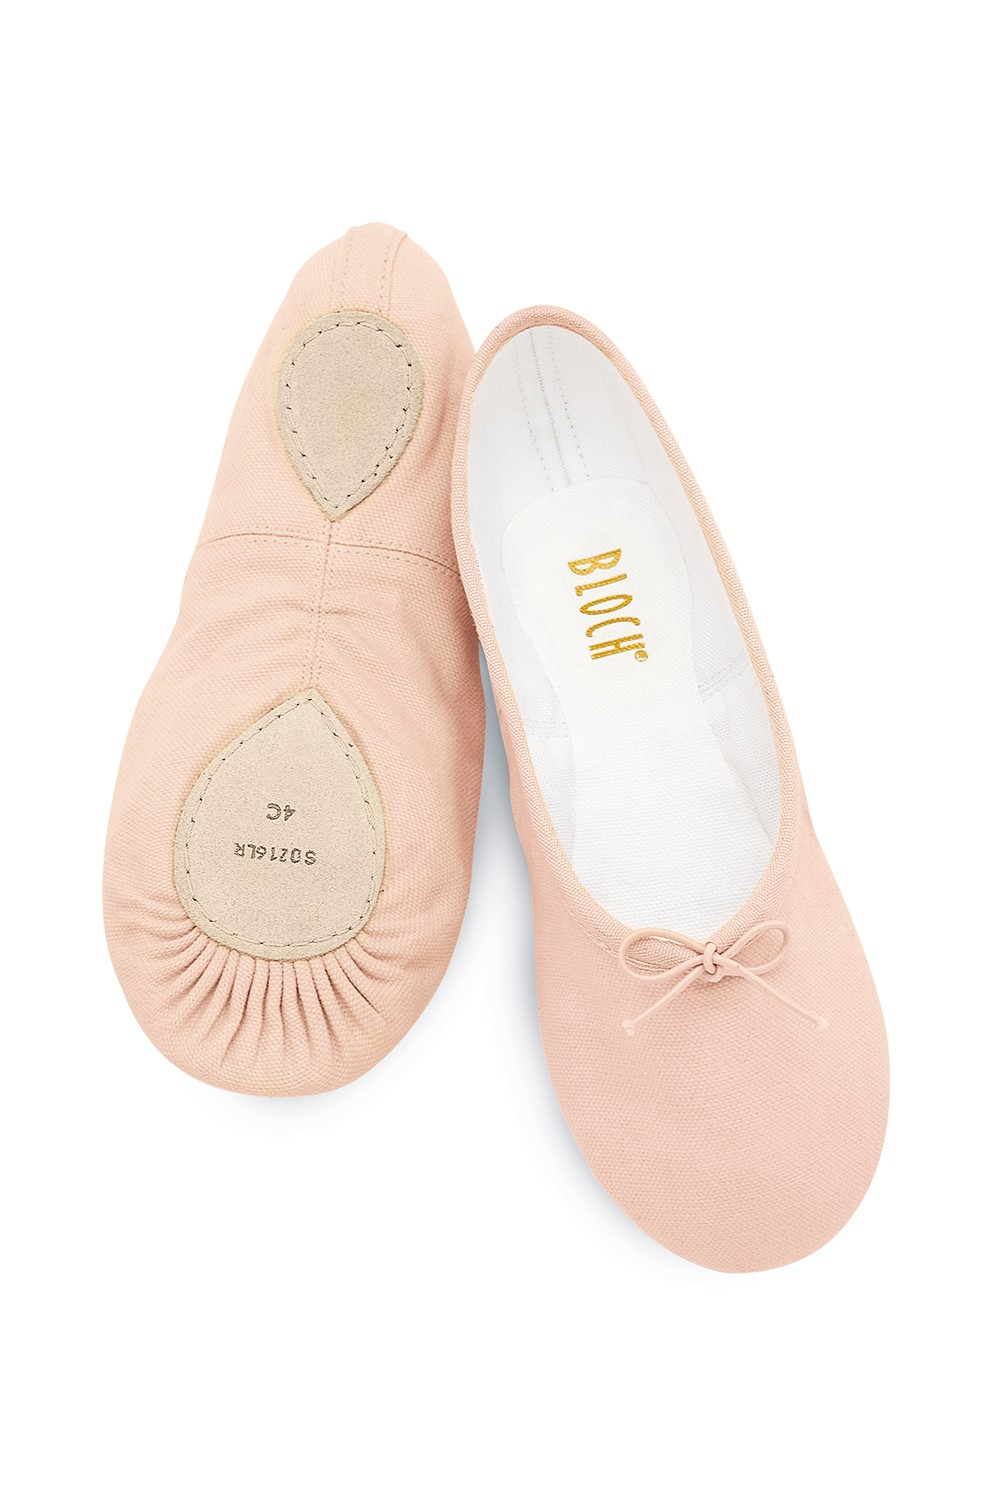 Prolite Ii Streamline Canvas Ballet Women's Ballet Shoes